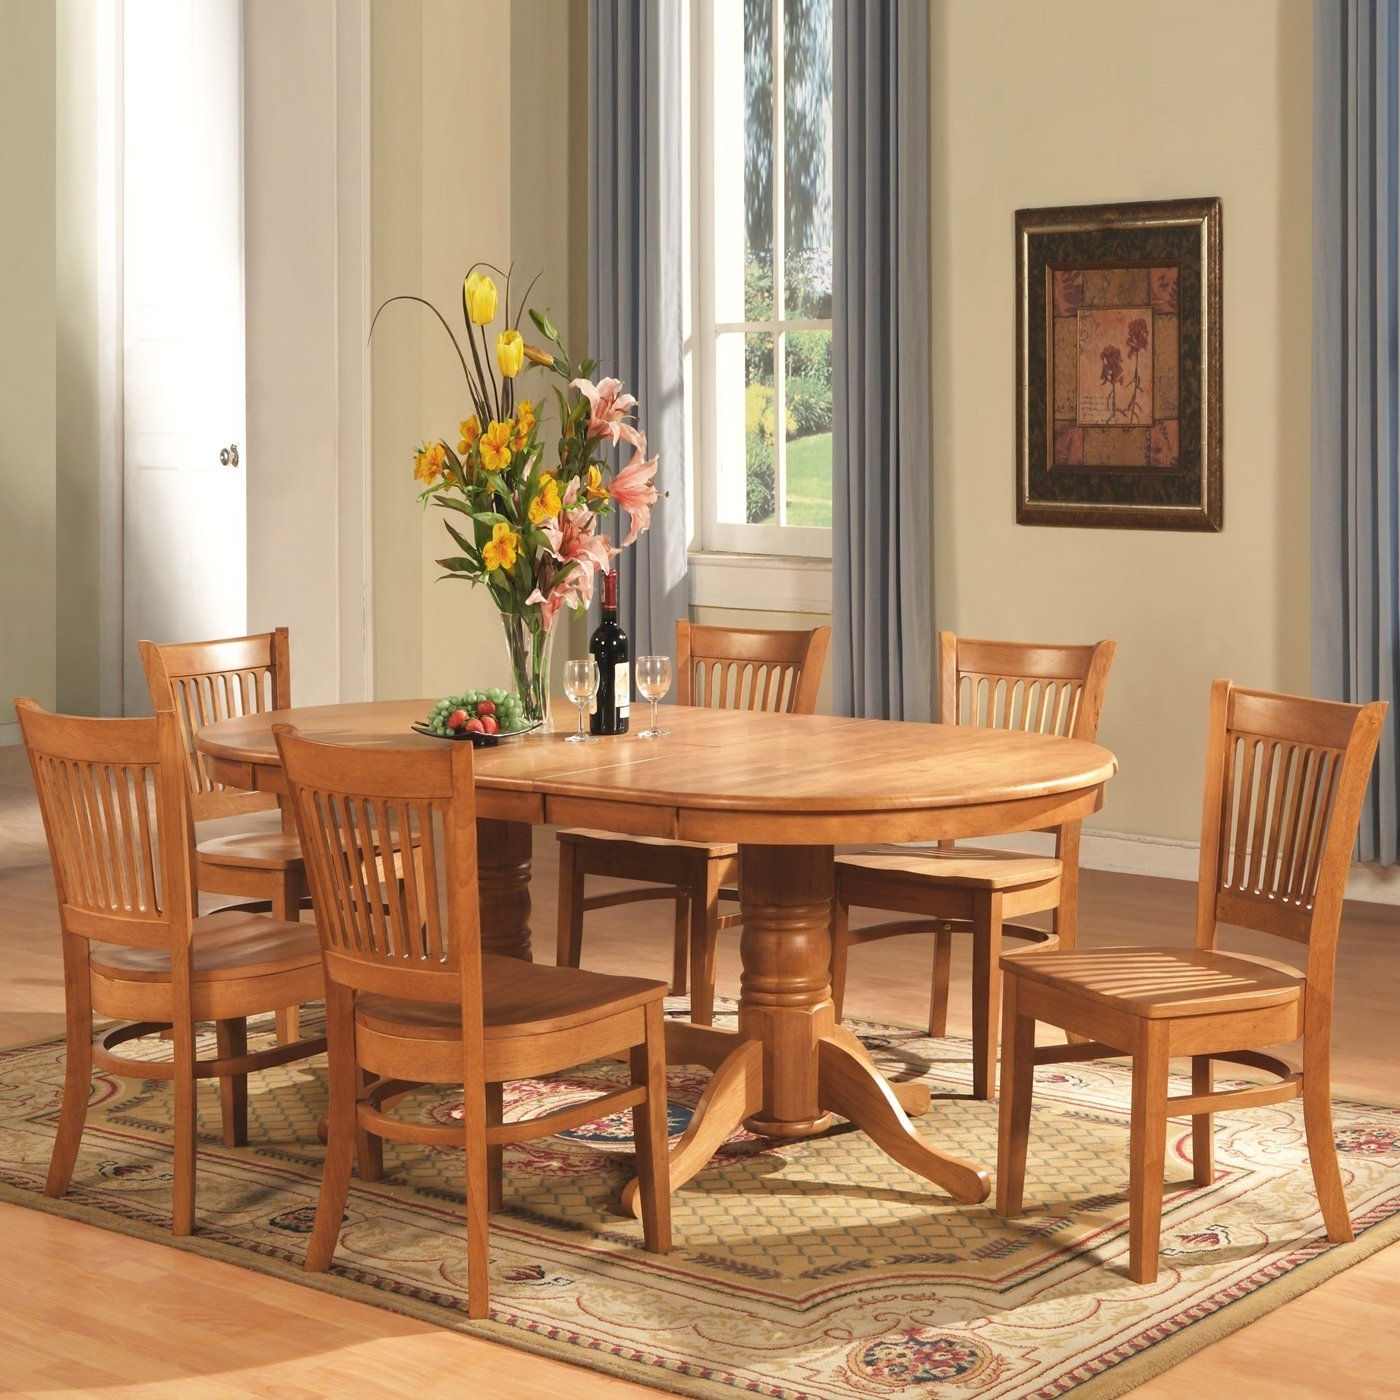 Newest Oval Oak Dining Tables And Chairs Regarding East West Furniture 8 Piece Vancouver Oval Table Dining Set, Oak (View 14 of 25)